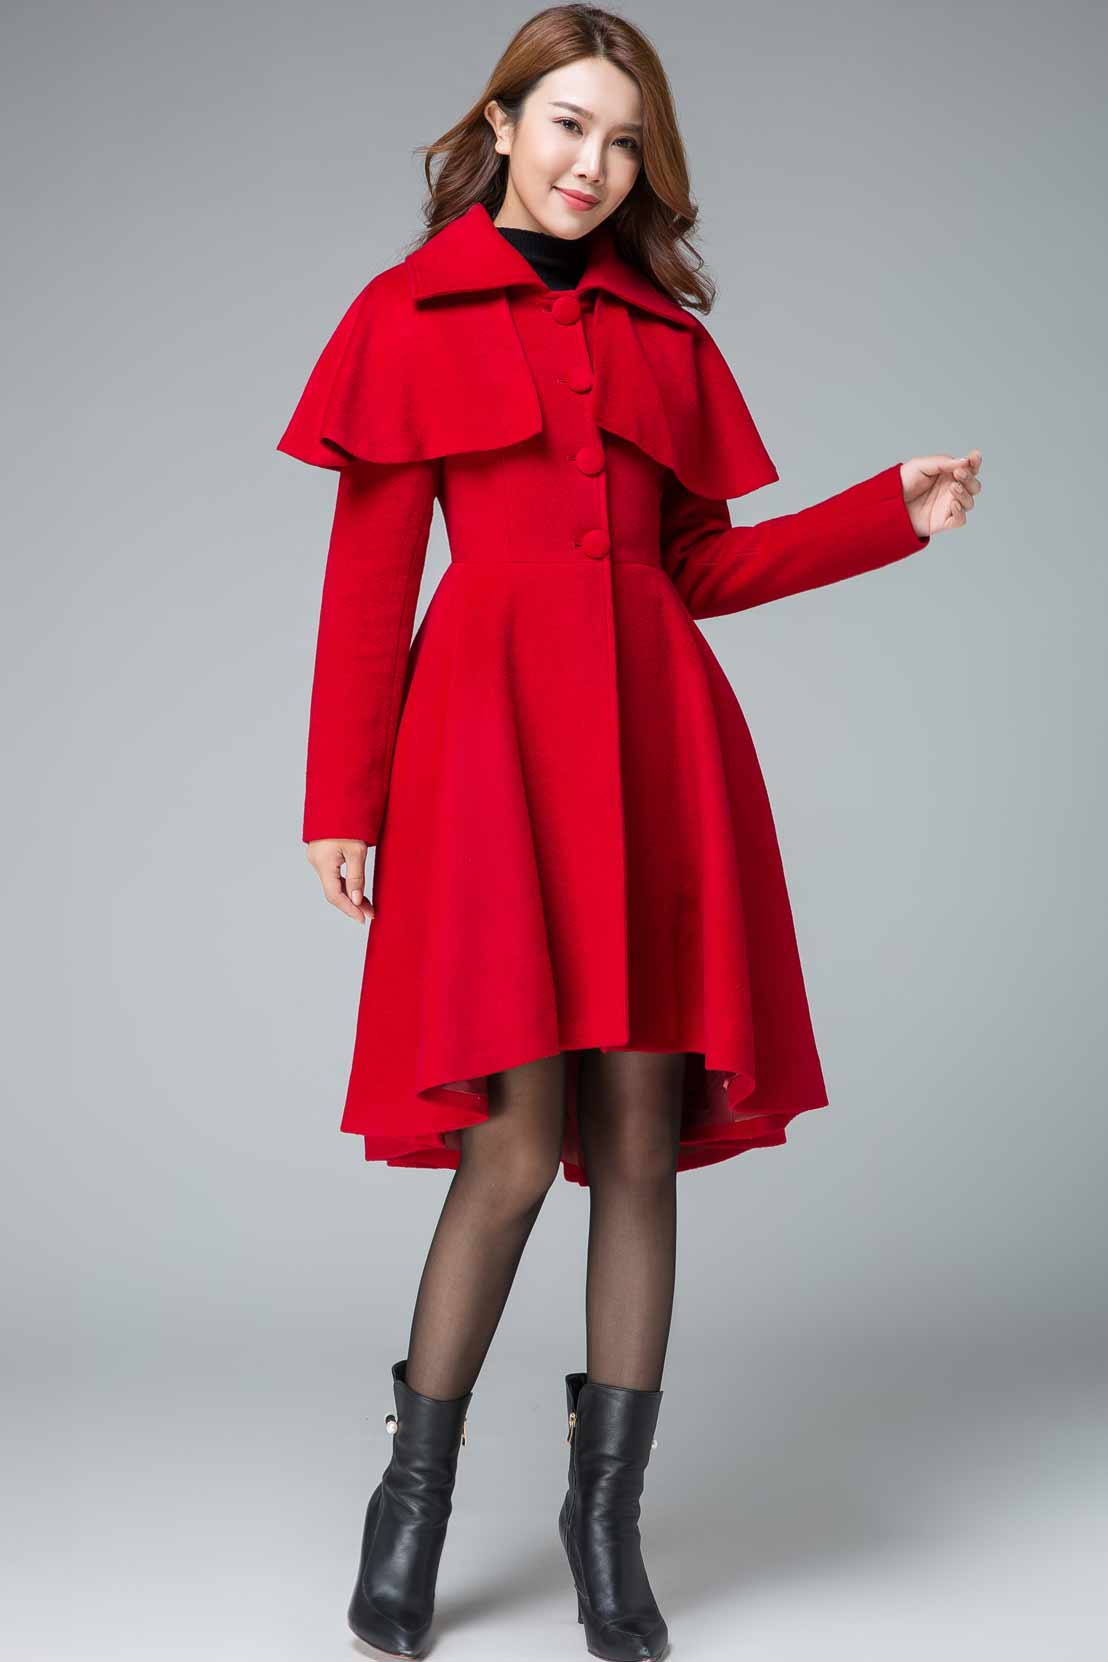 vintage inspired cape coat, red winter capelet coats 1848#